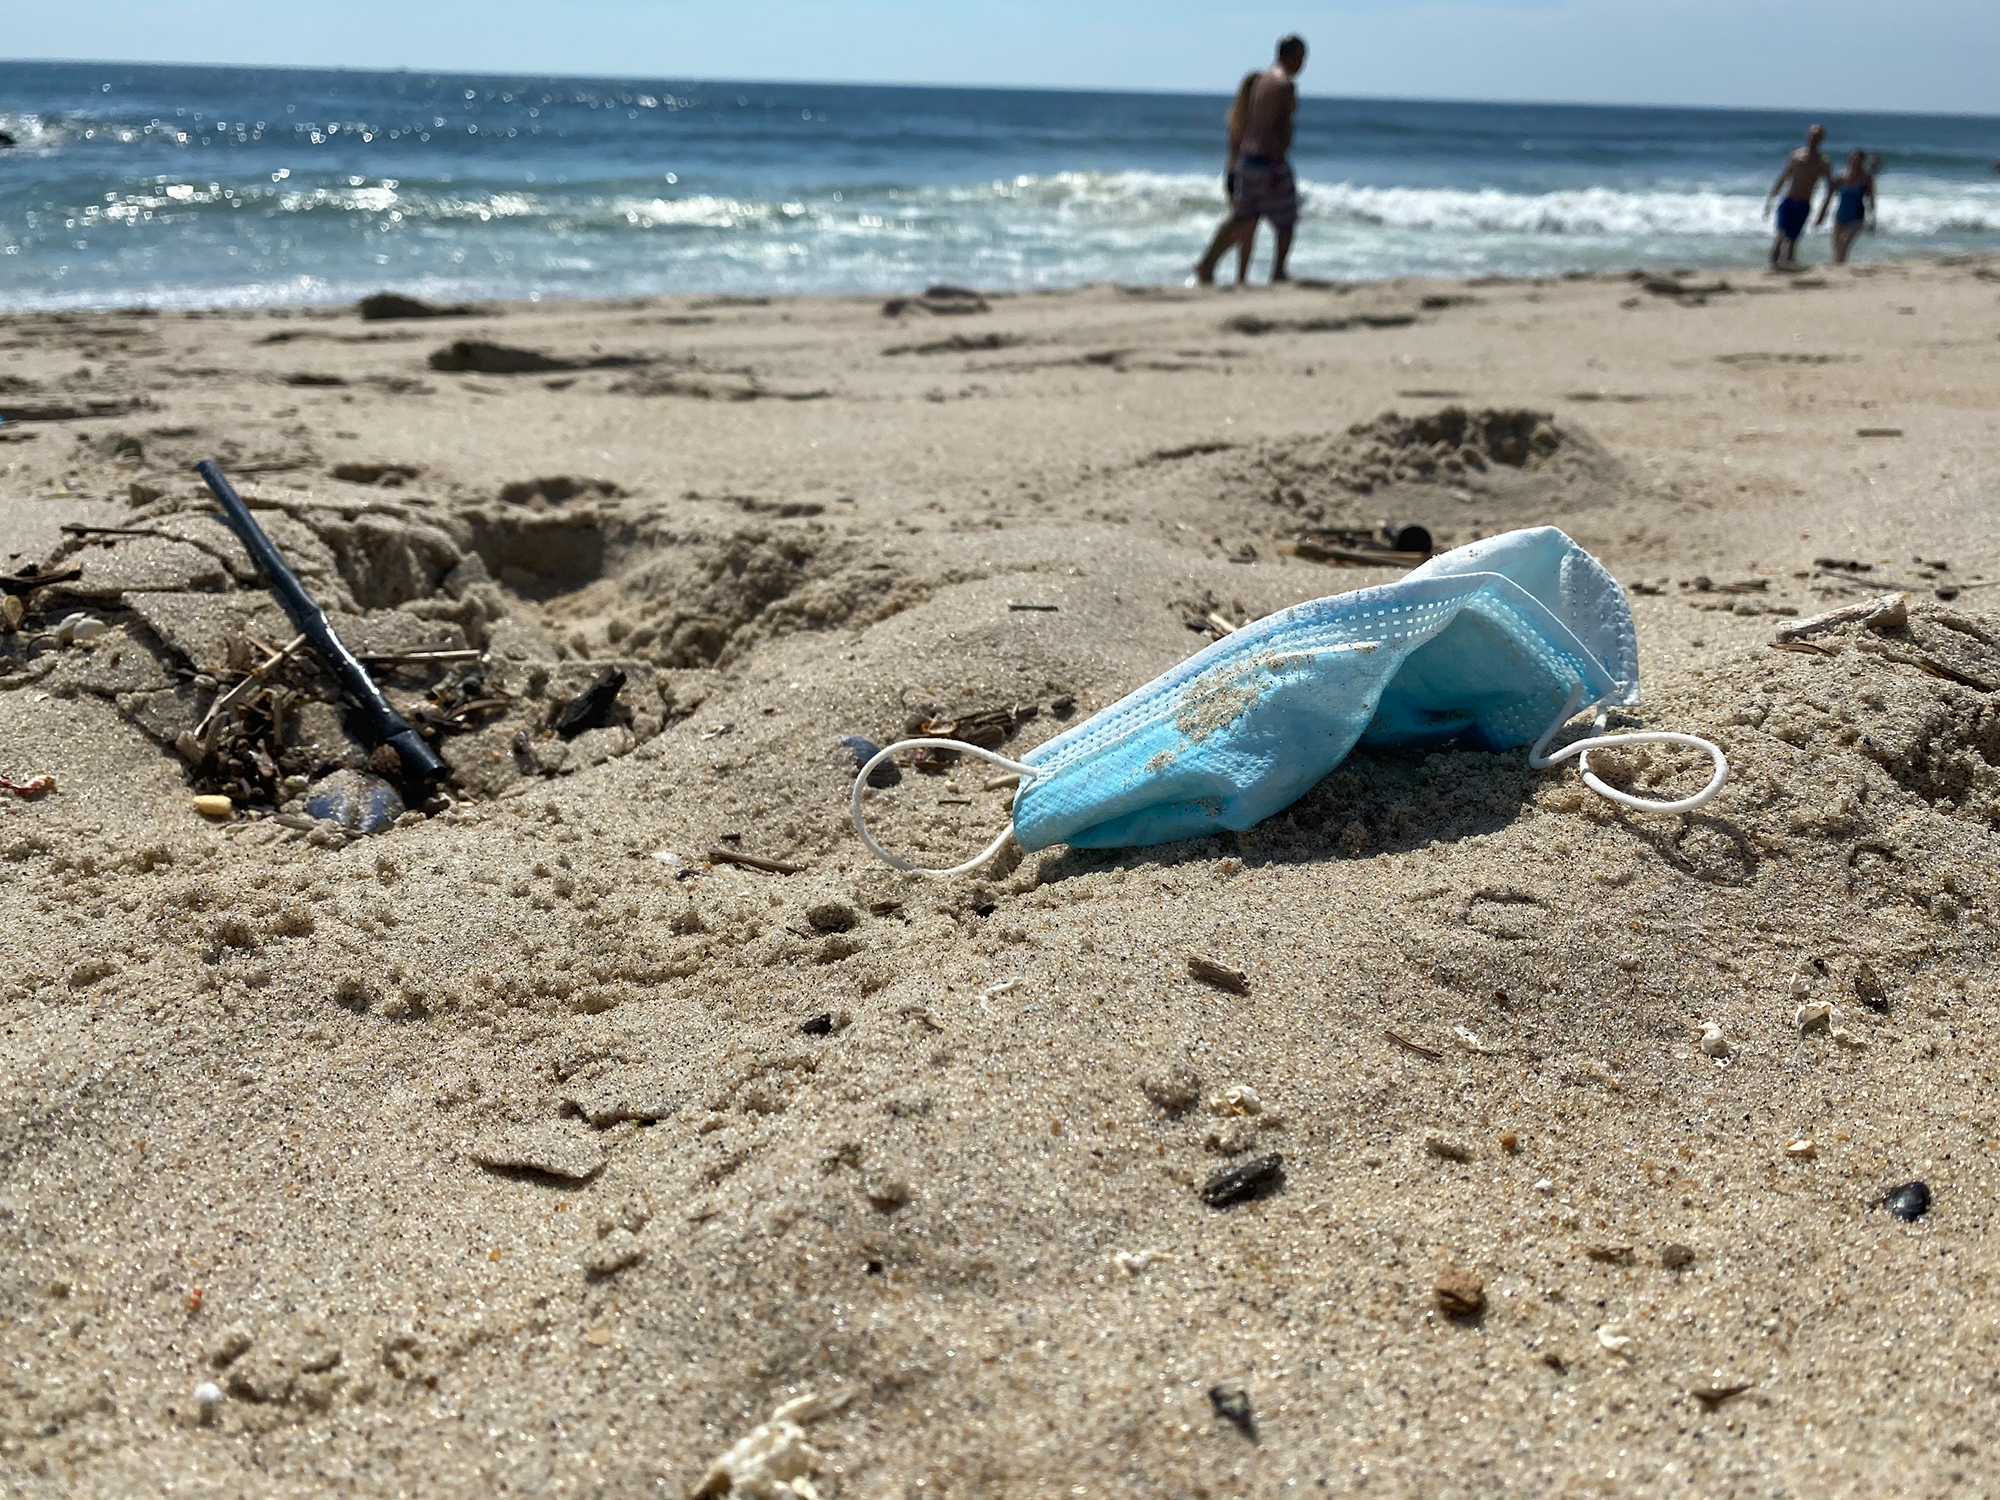 Used masks and gloves are showing up on beaches and in oceans